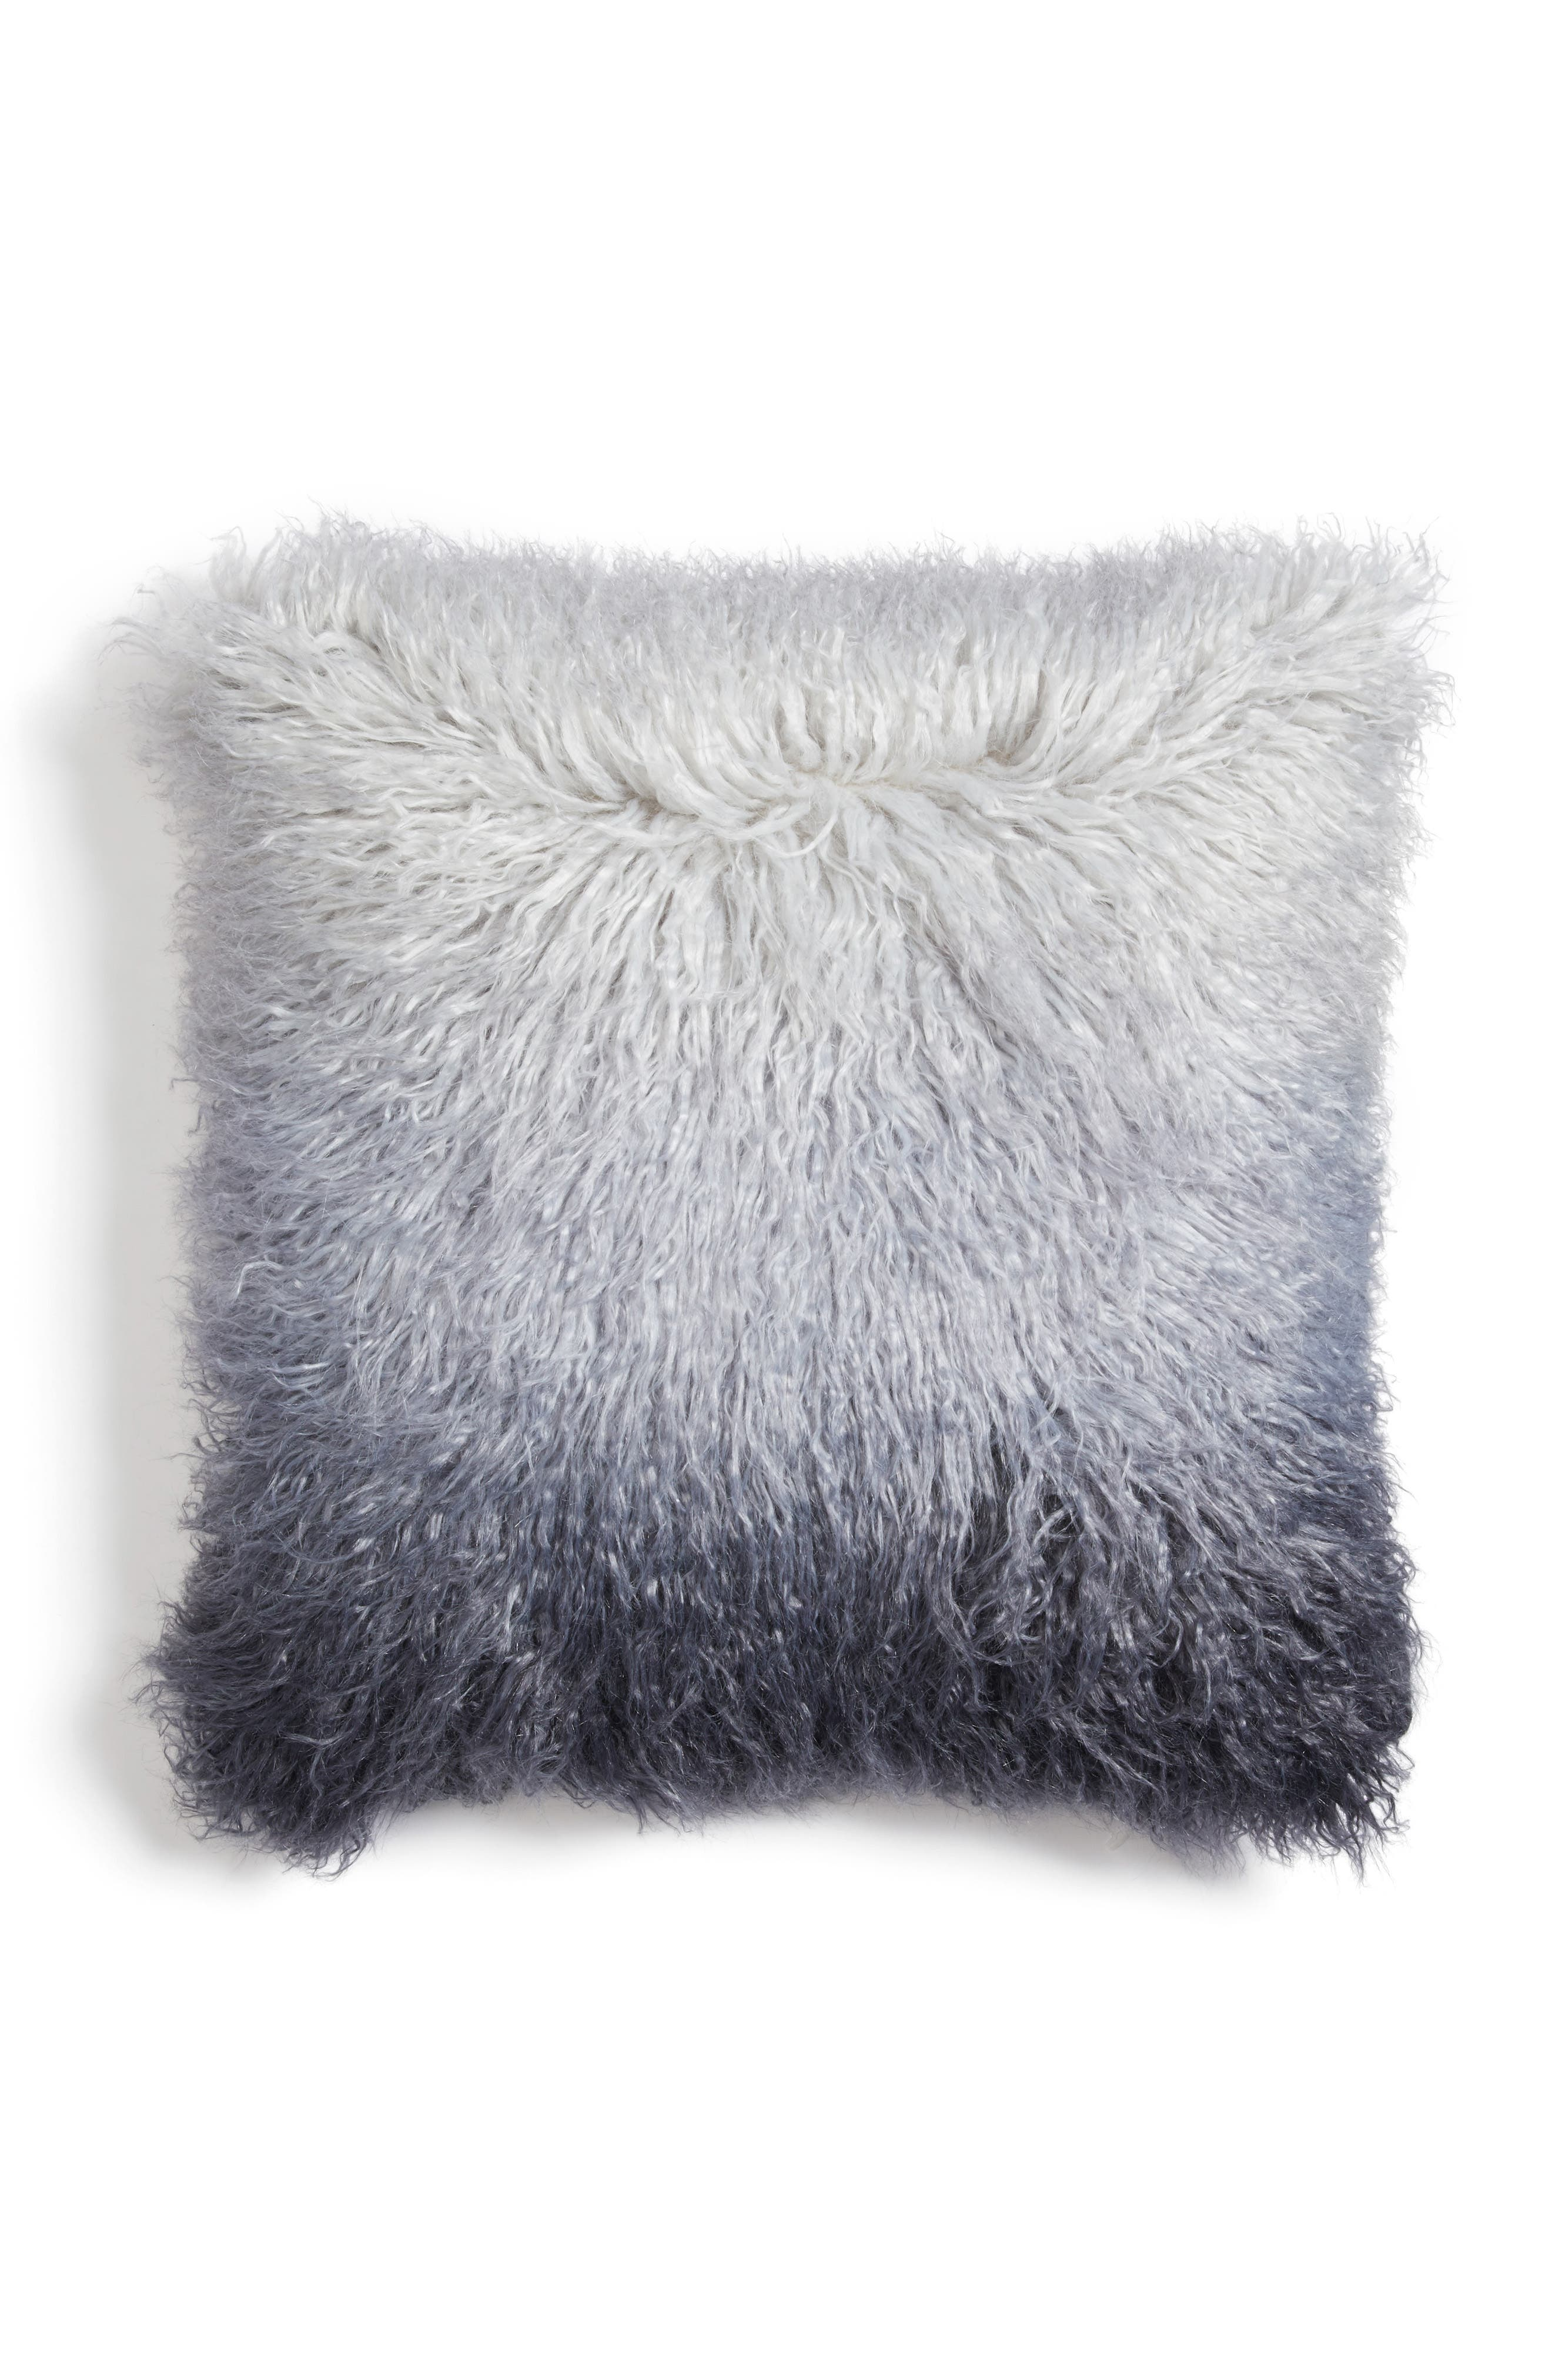 Nordstrom at Home Ombré Faux Fur Flokati Accent Pillow